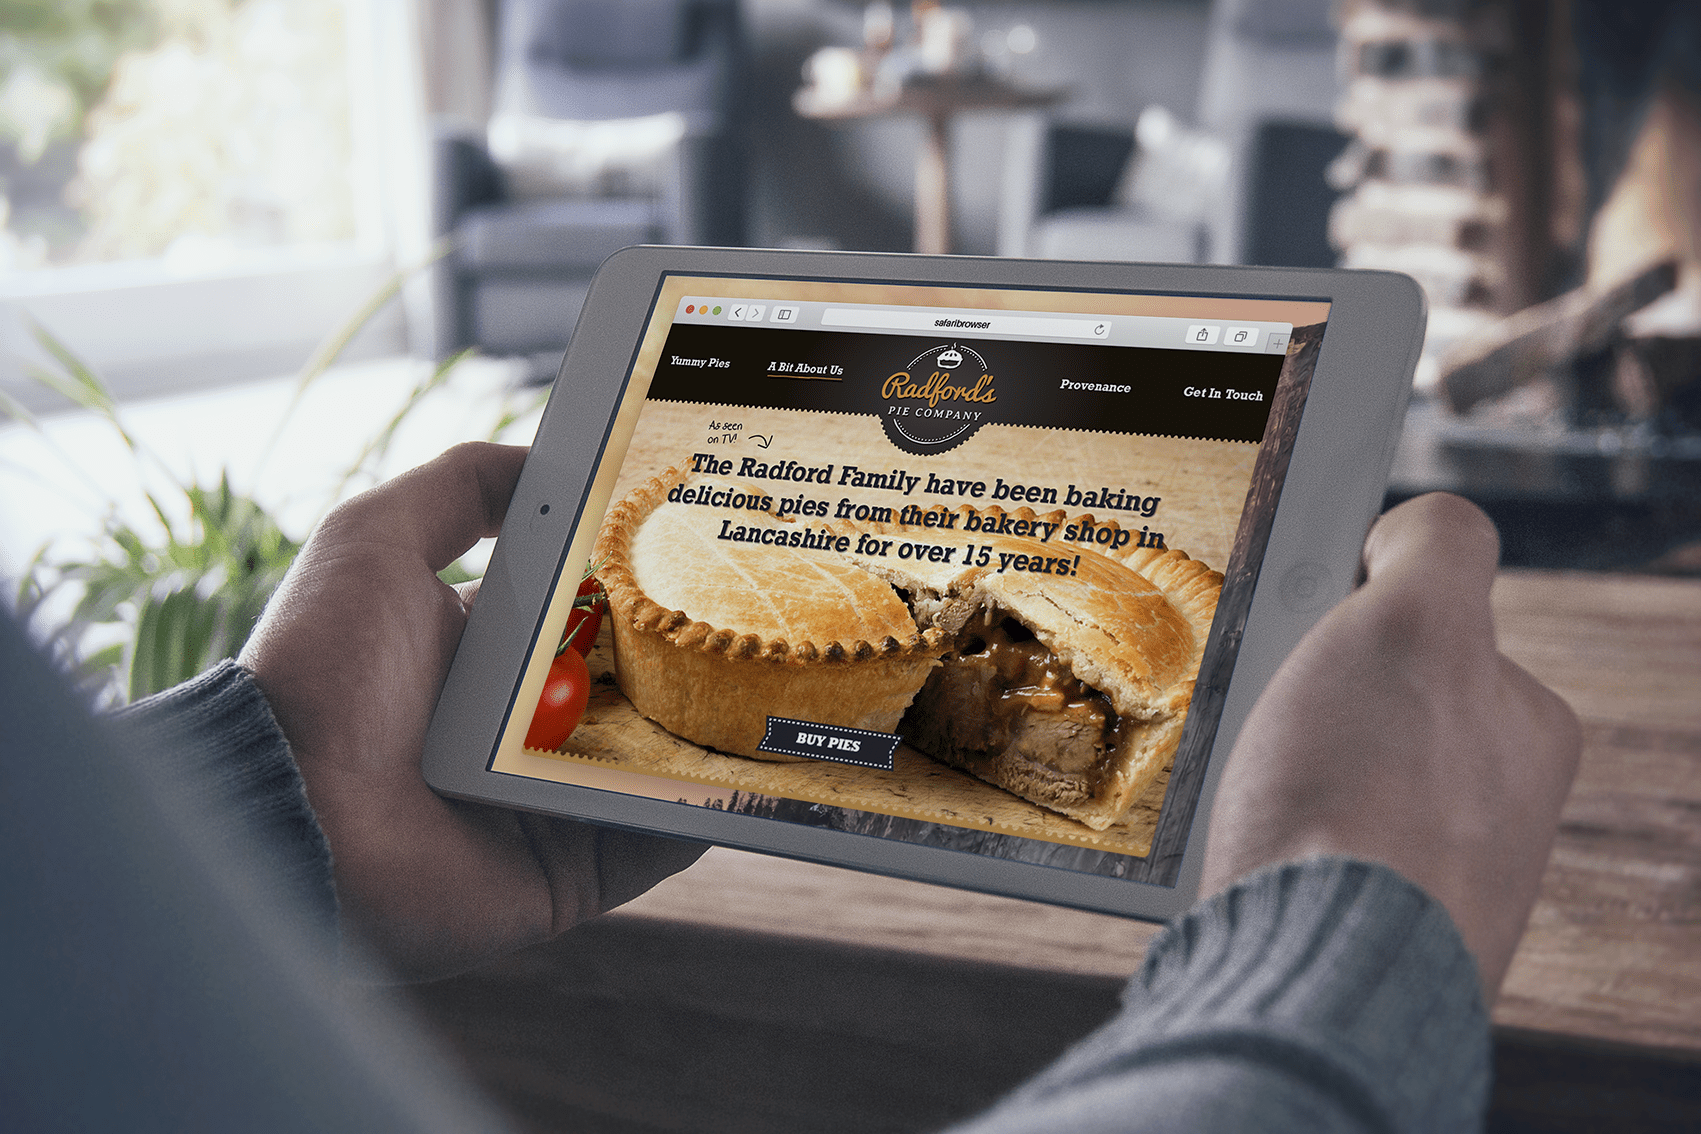 Hotfoot designs and builds a tasty new ecommerce website for Britain's biggest family